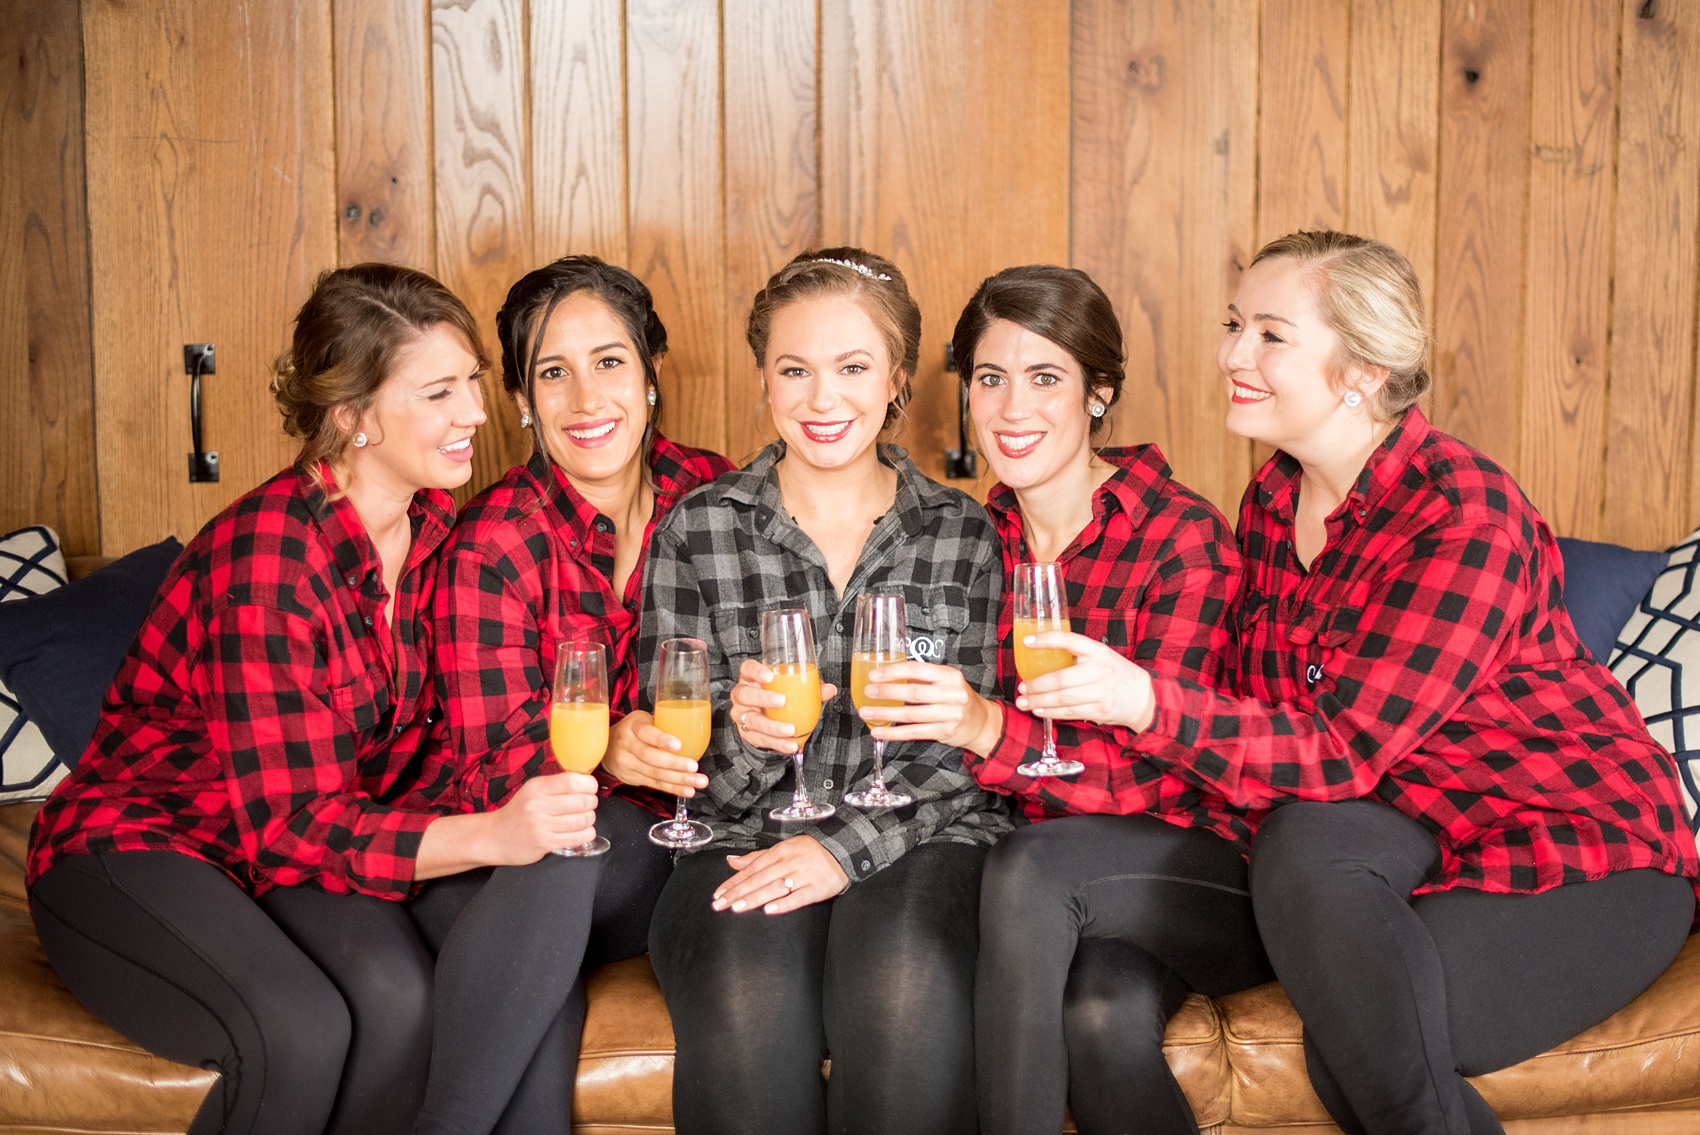 Durham wedding photos at The Cookery by Mikkel Paige Photography in North Carolina. The brought gifted her bridesmaids monogrammed button-down plaid shirts with their first initial on the pocket, as shown in this picture, for the getting ready and mimosa portion of the winter morning.